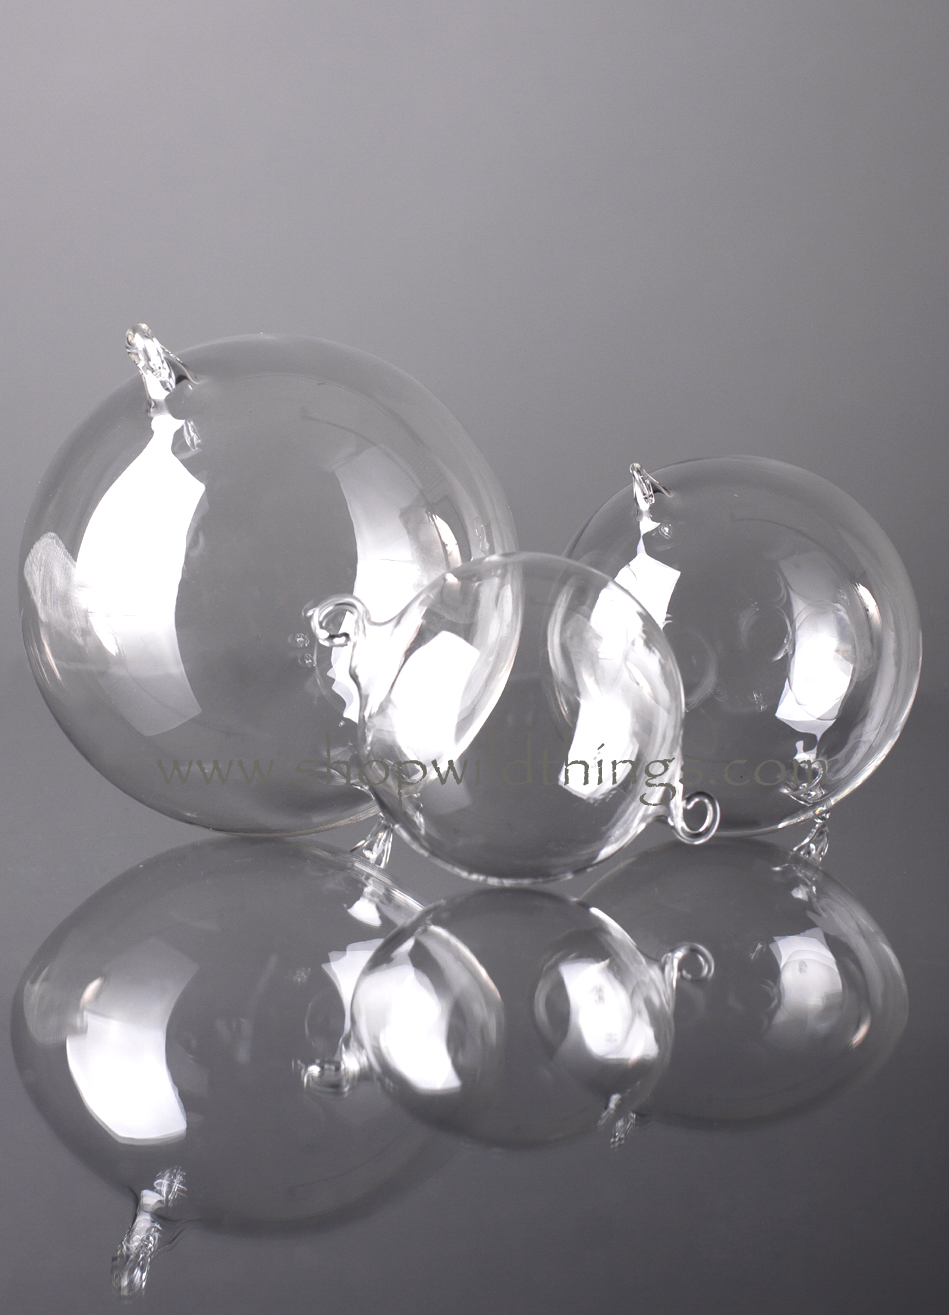 Glass Decorative Hanging Balls - 60mm - Set of 6 - as low as $16.99